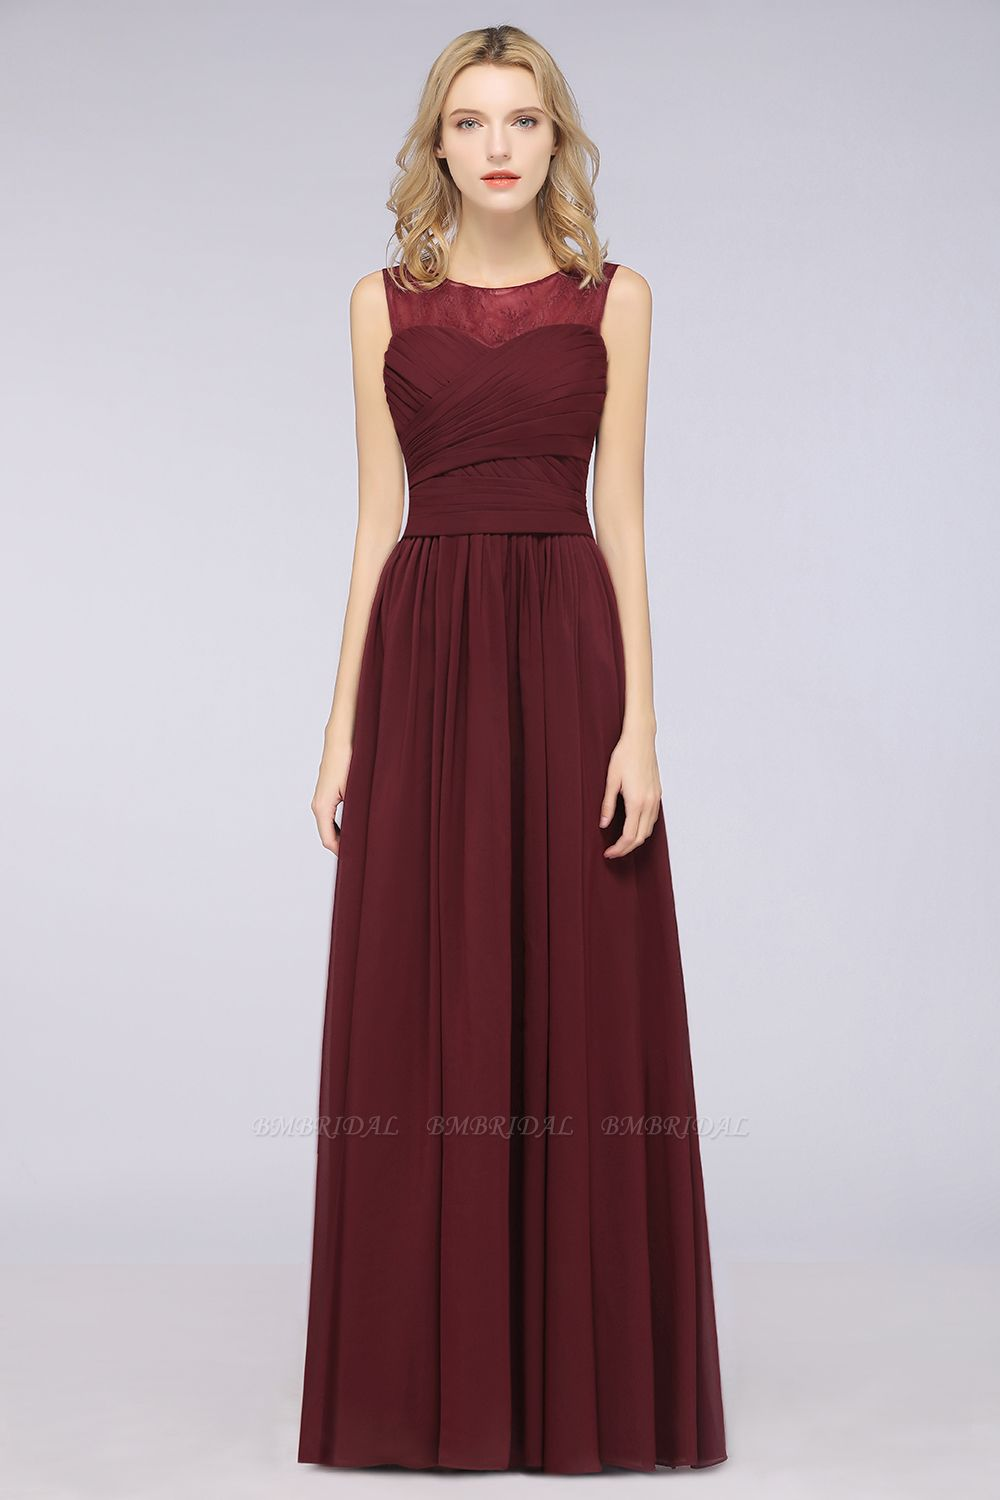 Modest Chiffon Lace Scoop Ruffle Burgundy Bridesmaid Dresses Affordable